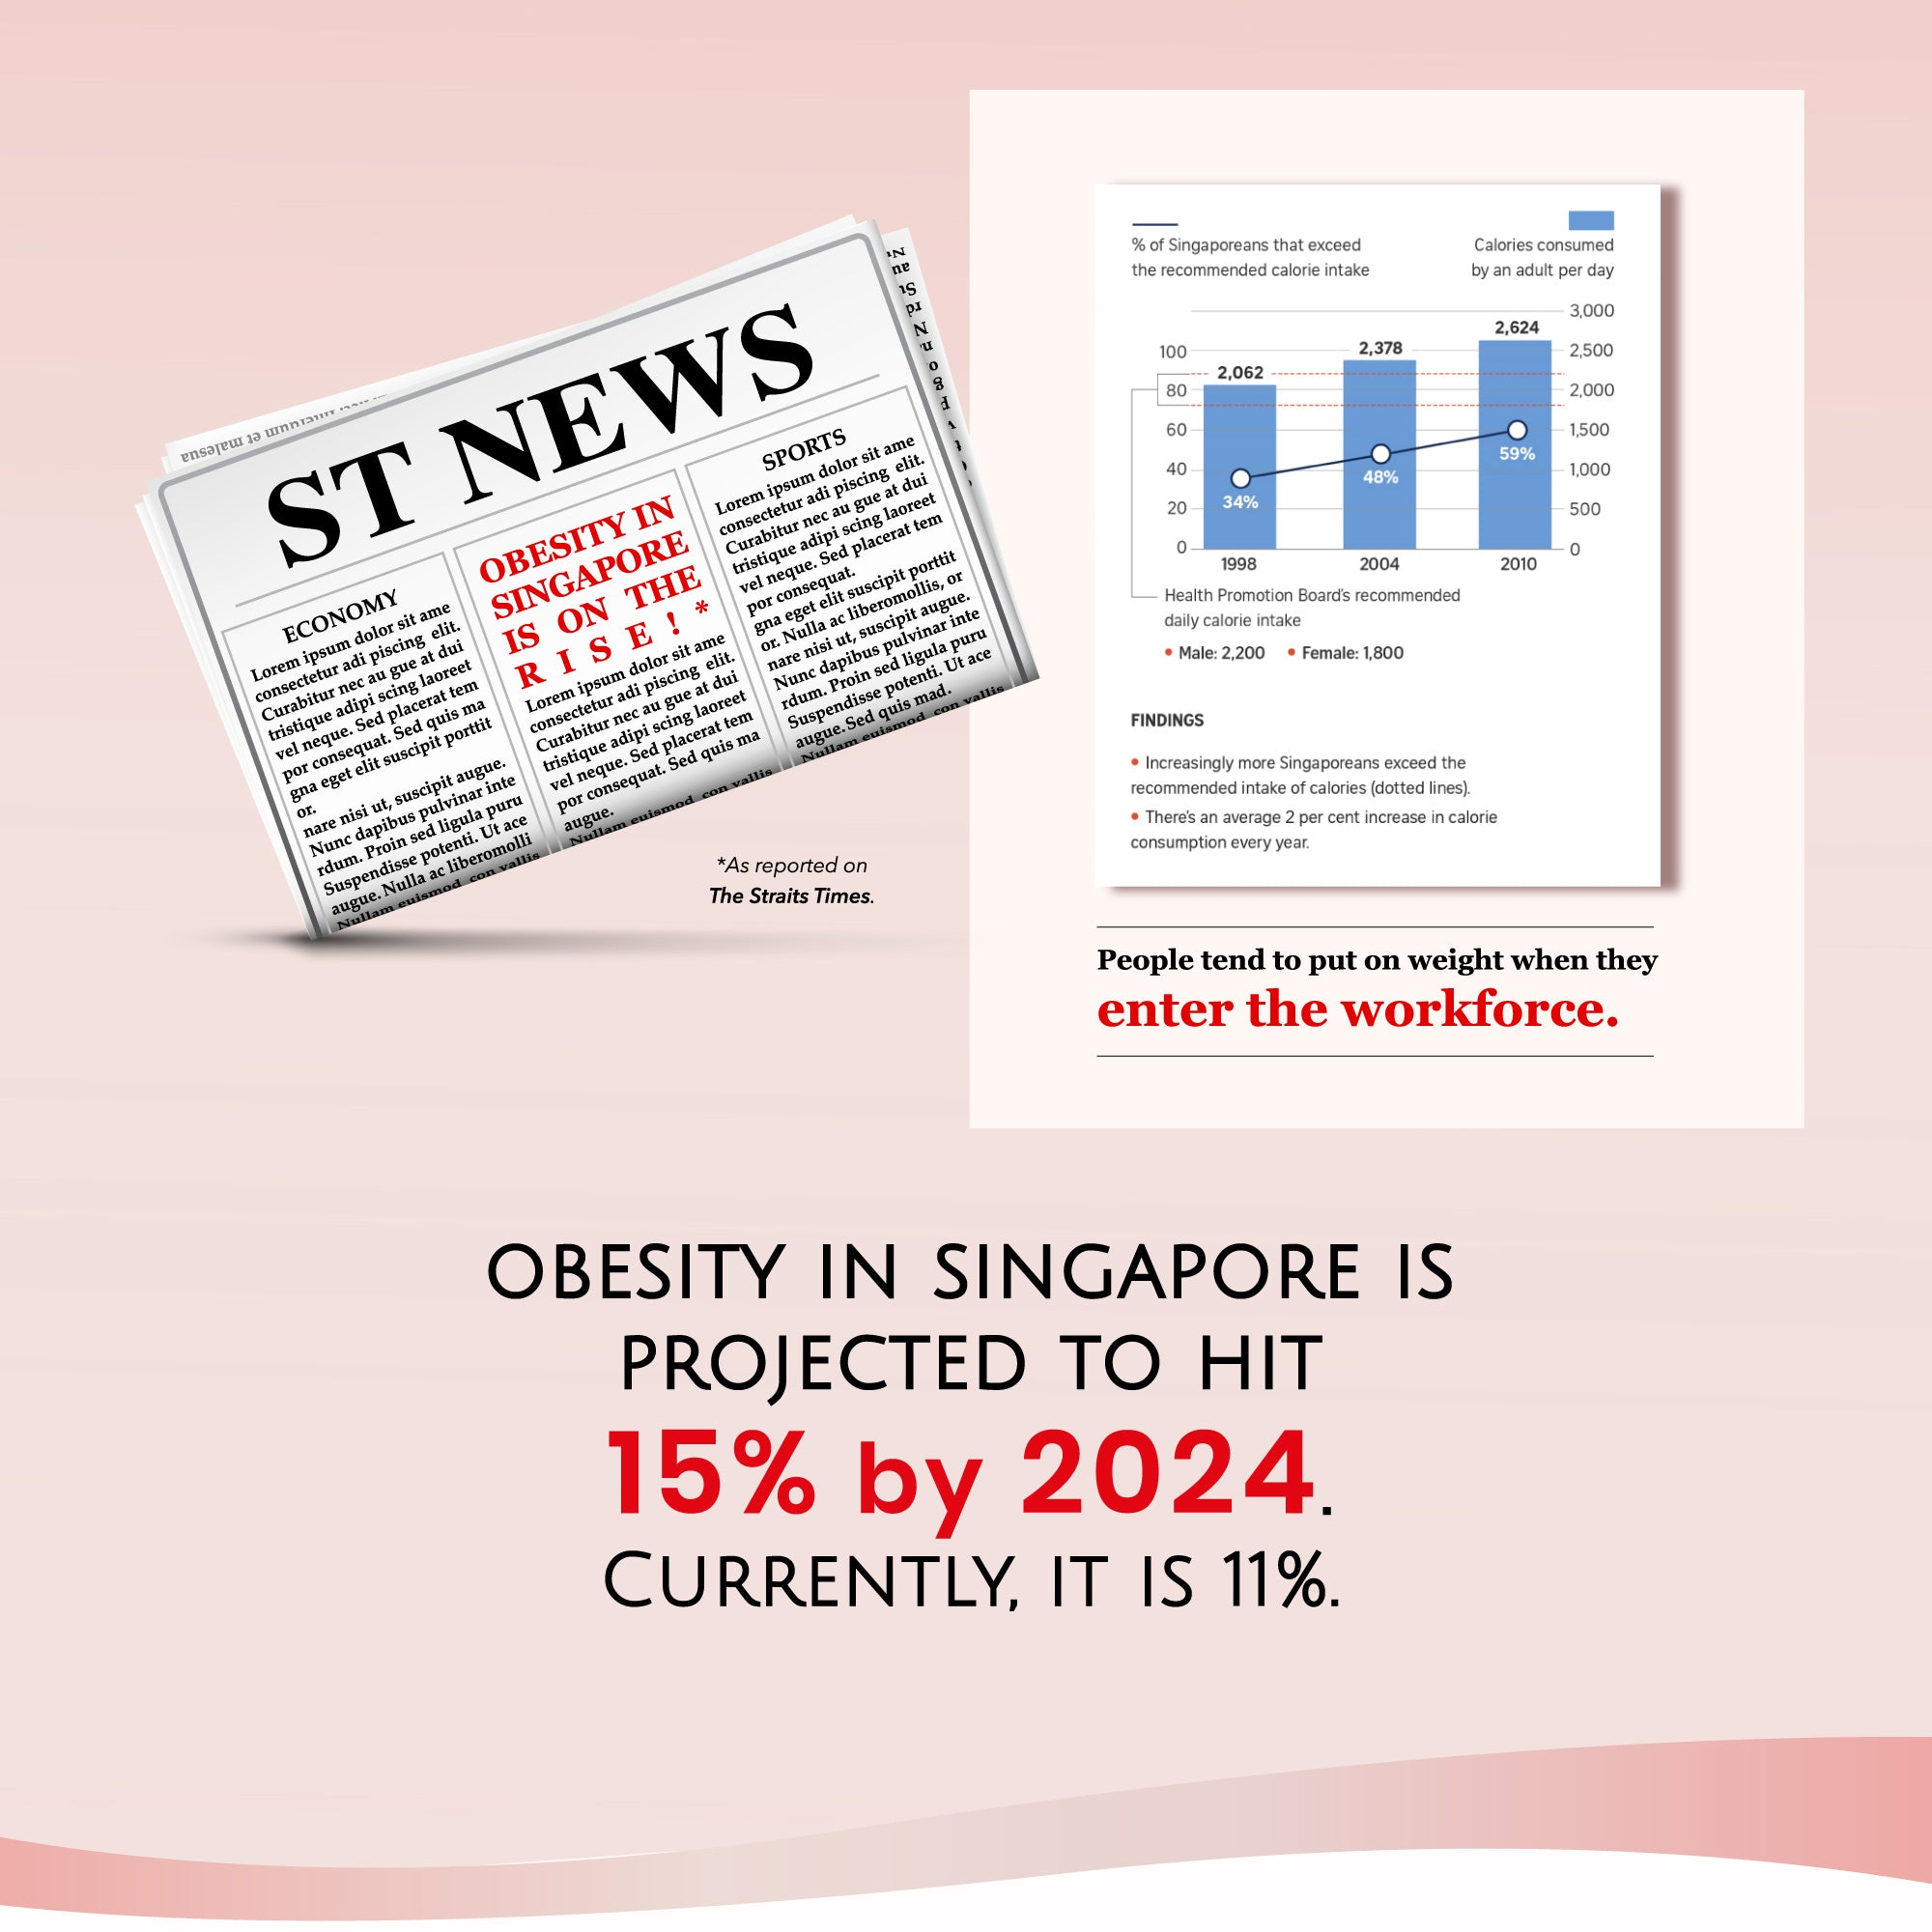 Obesity in Singapore is projected to hit 15% by 2024. Currently, it is at 11%.